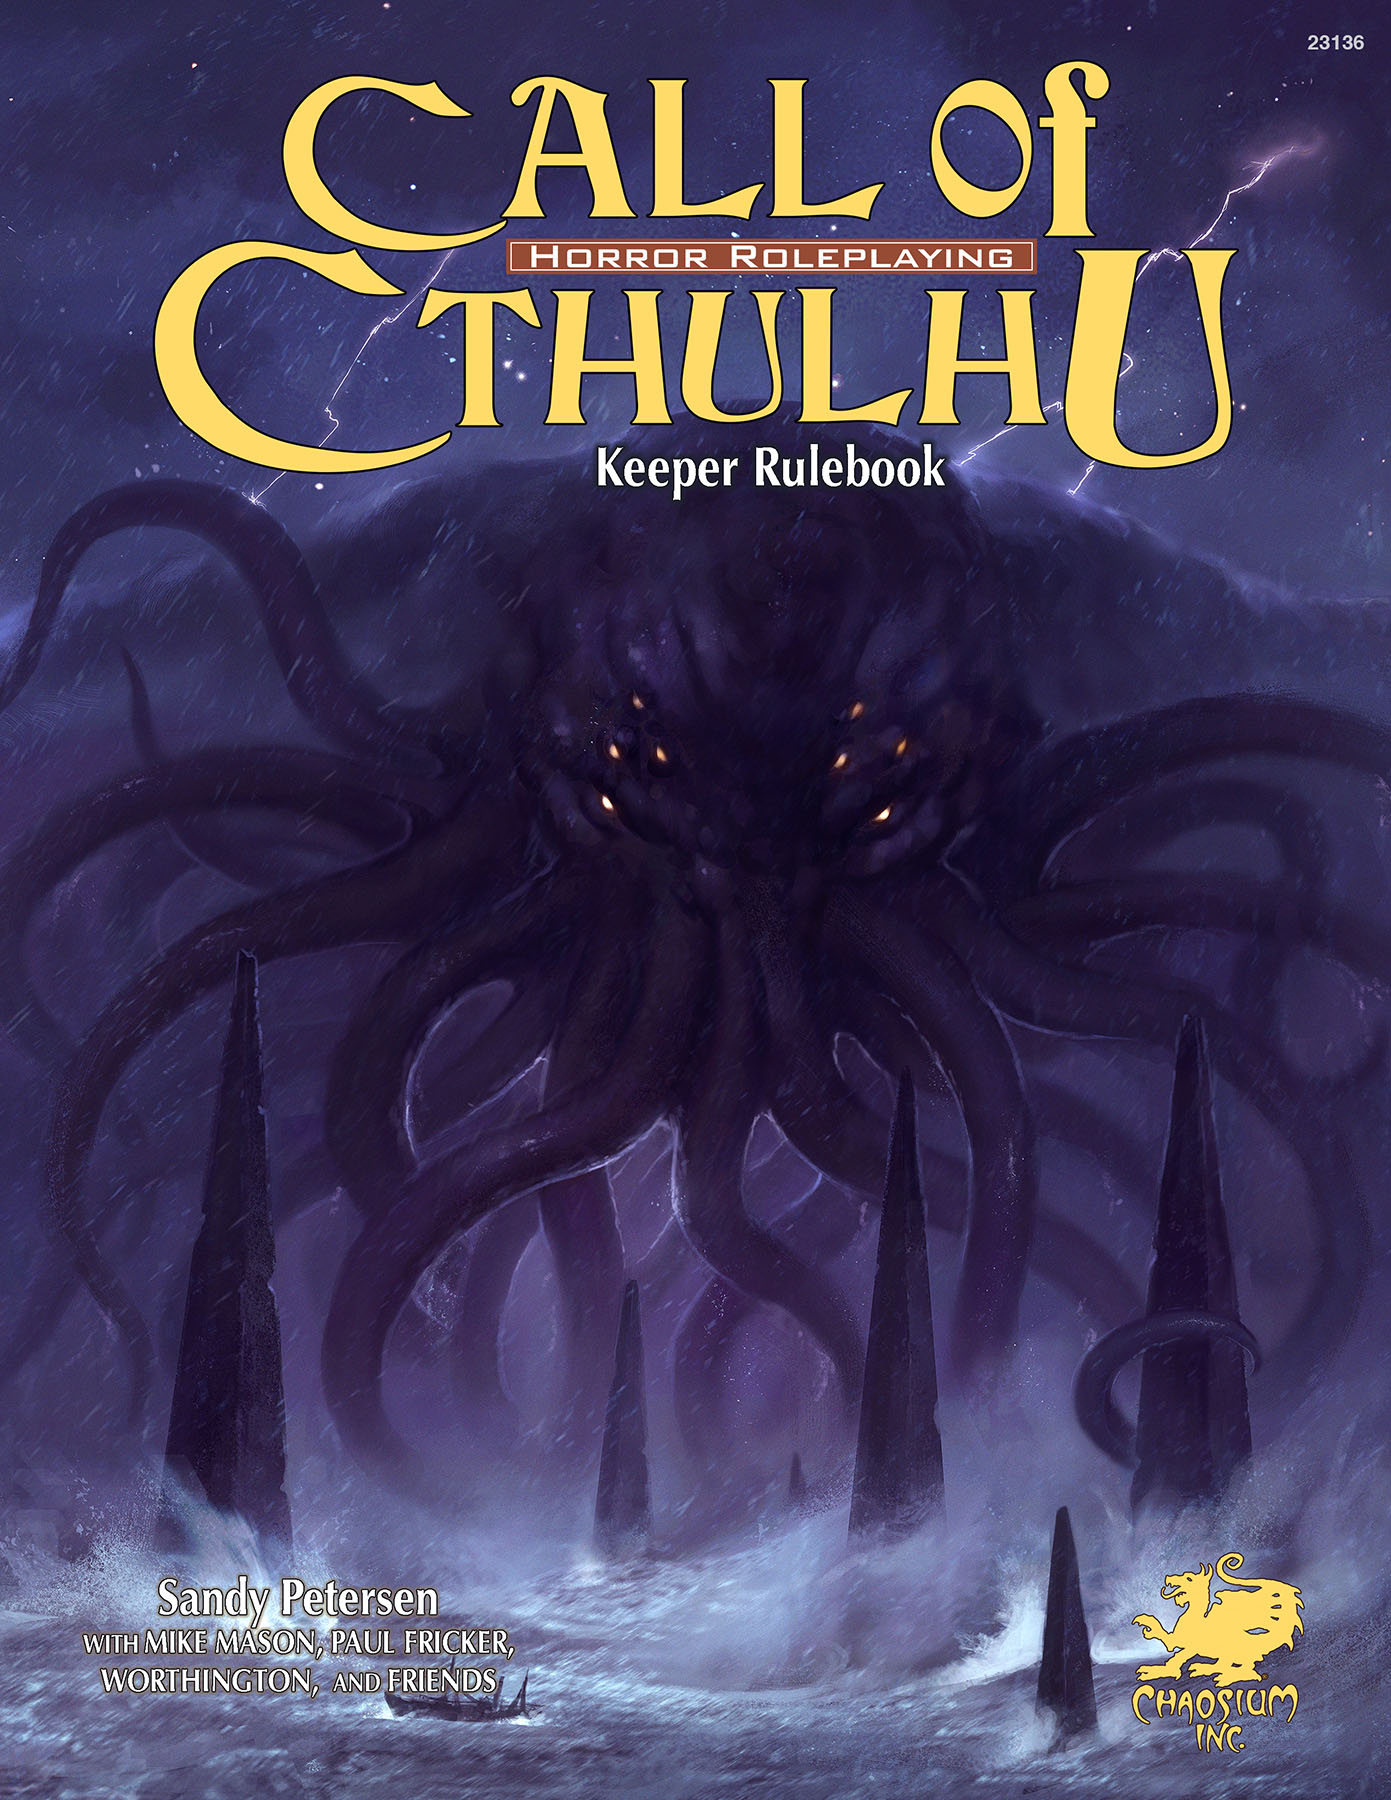 Call of Cthulhu 7th Edition Keeper Rulebook -  Chaosium Inc